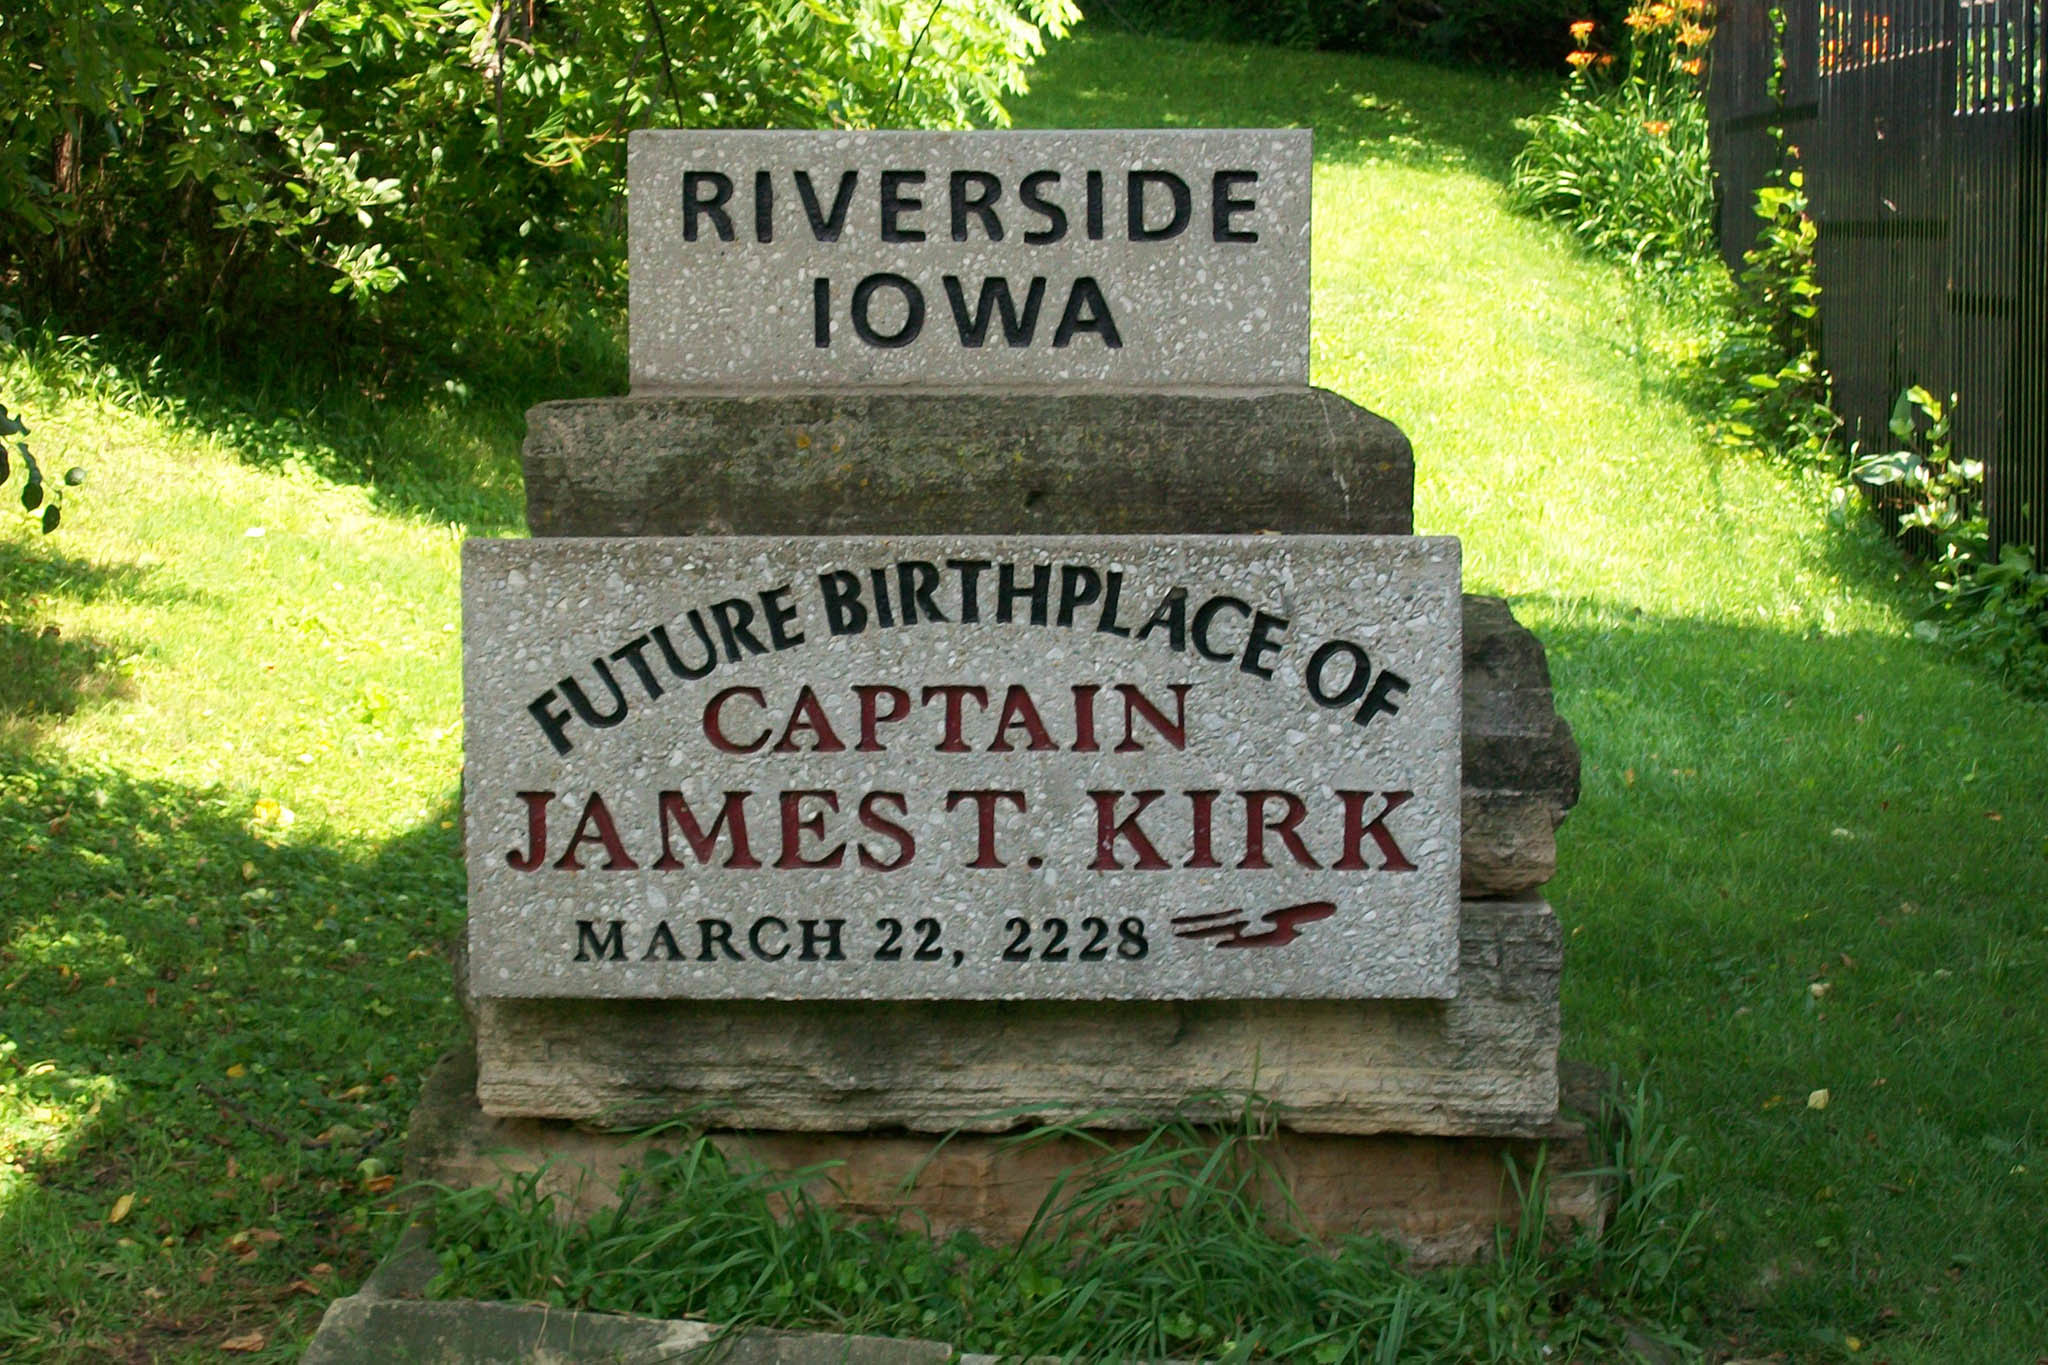 Future Birthplace of Captain James T. Kirk